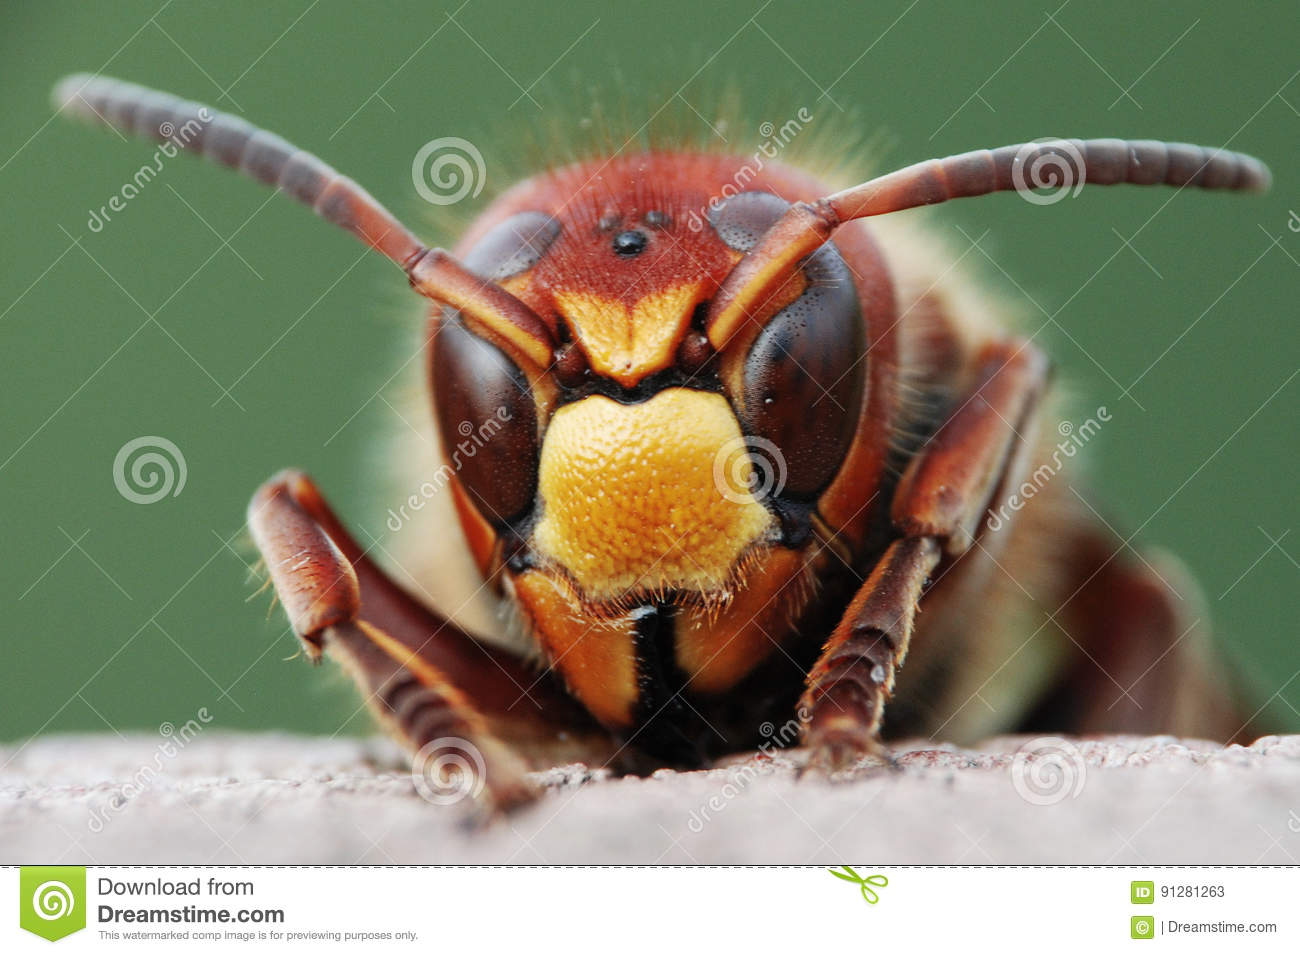 Download Wasp stock image. Image of wallpaper, hornet, insect - 91281263